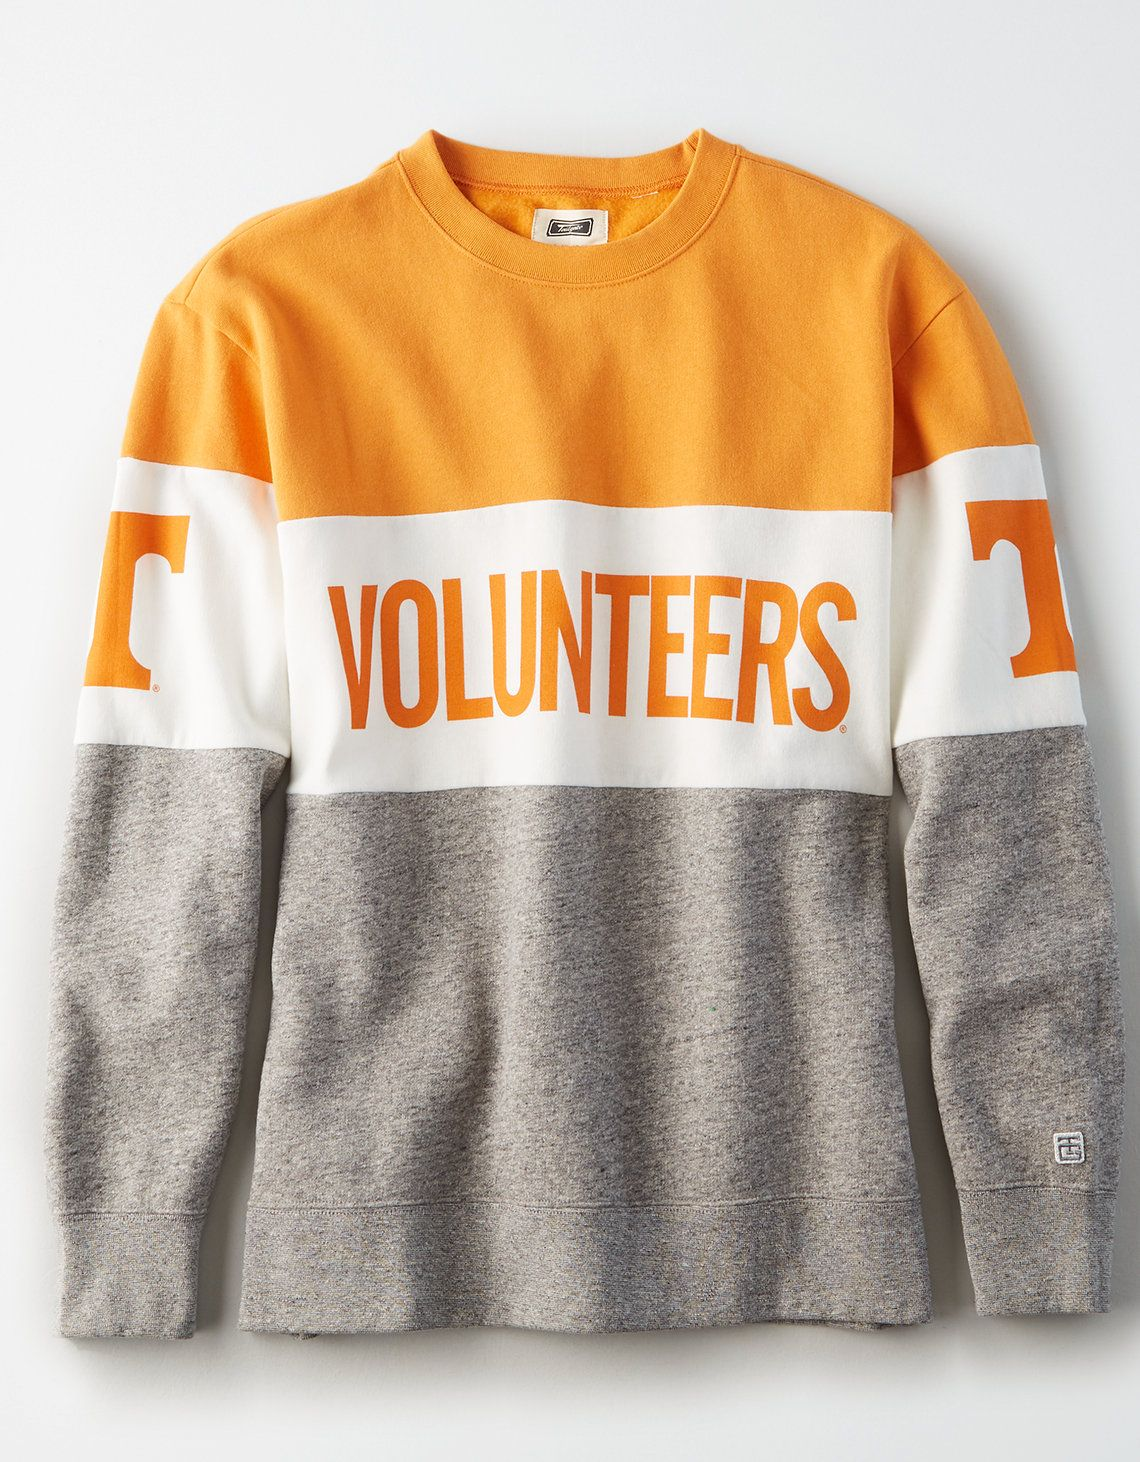 Tailgate Women S Tennessee Volunteers Colorblock Sweatshirt Color Block Sweatshirt Sweatshirts Tennessee Outfits [ 1462 x 1140 Pixel ]